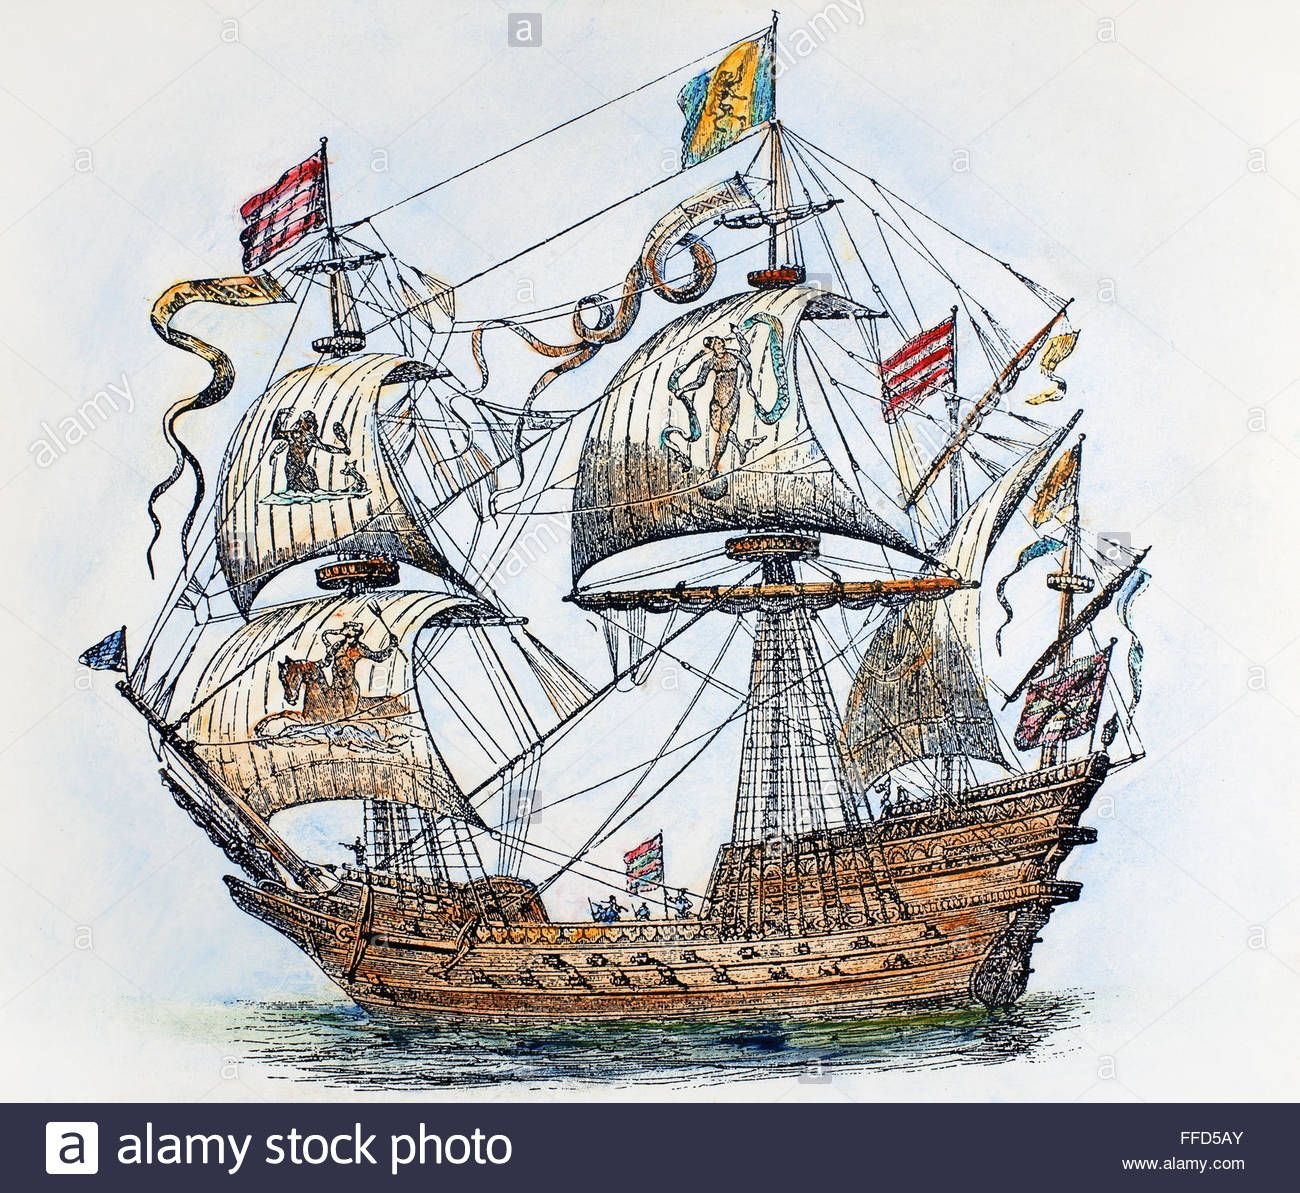 the dragon devouring the companions of cadmus artist hendrick this stock image spanish galleon na galleon from the spanish armada of wood engraving century after a contemporary drawing